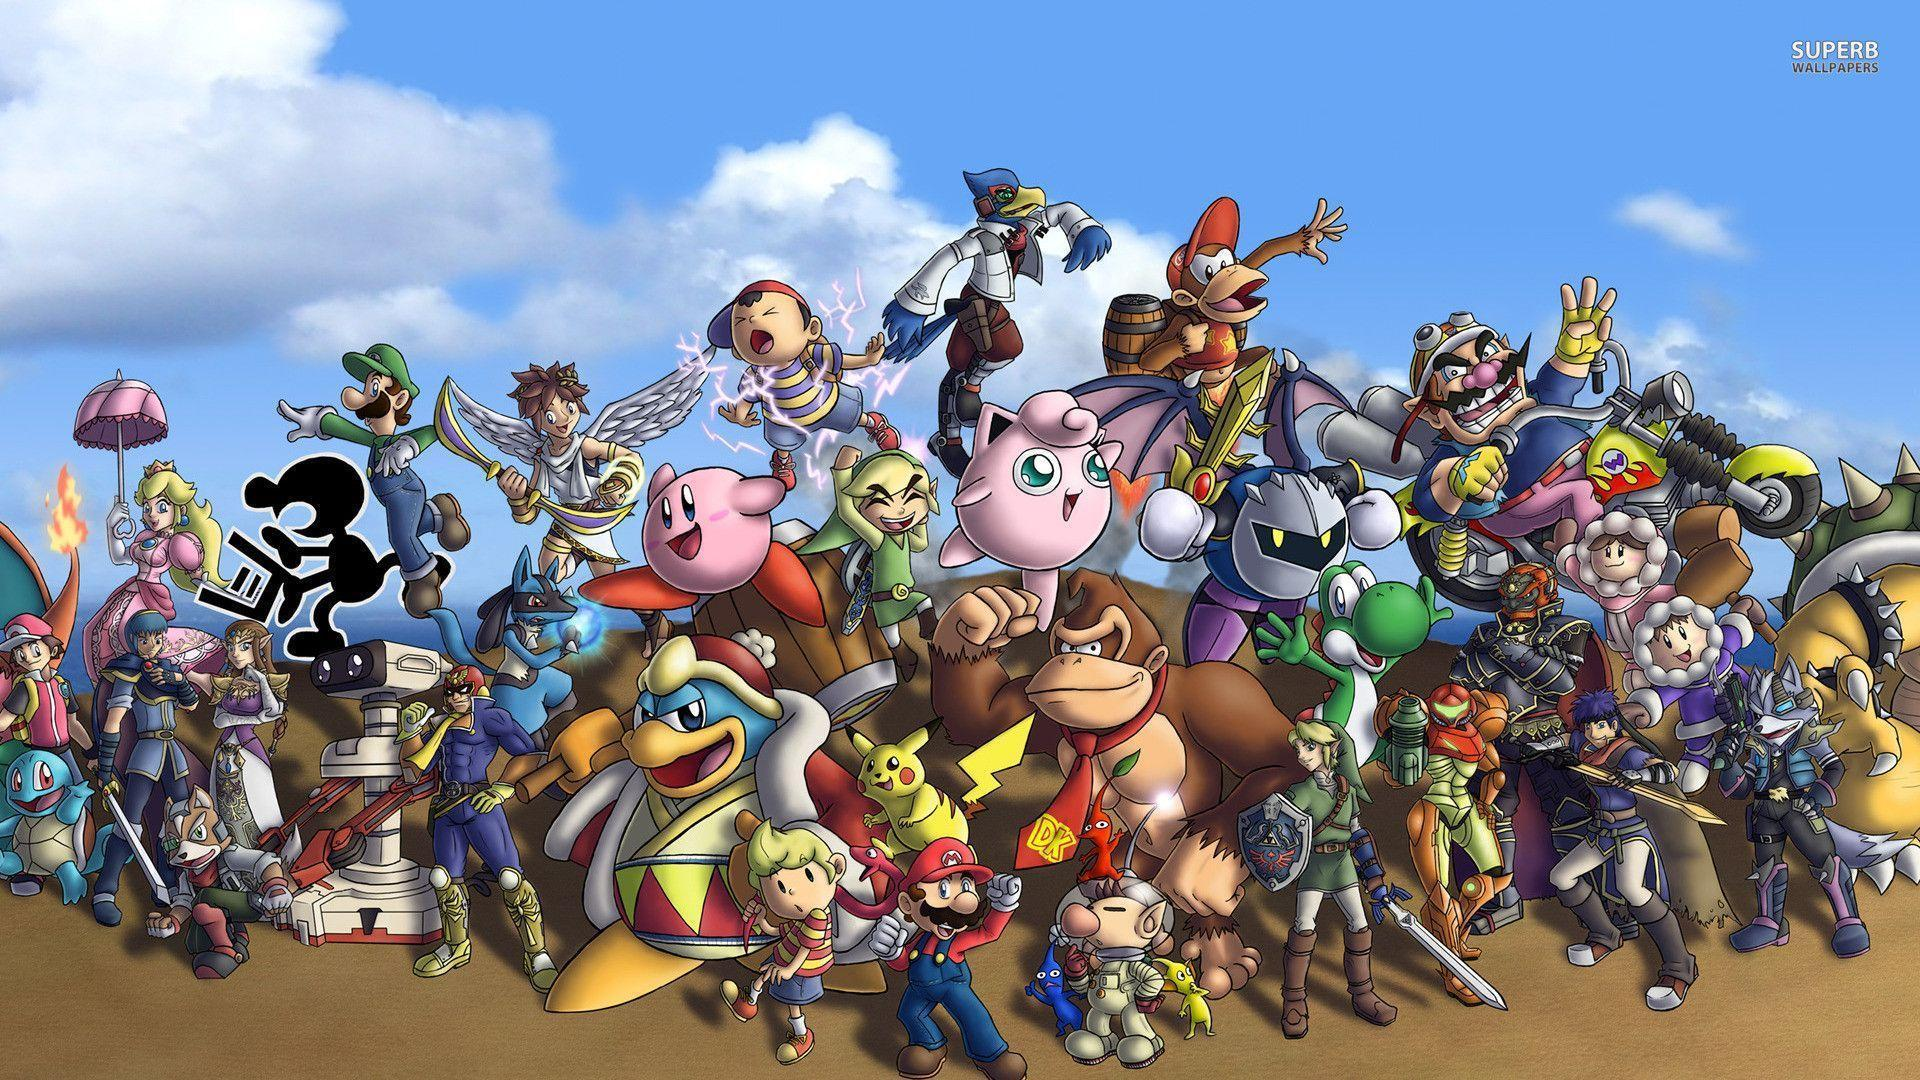 Super Smash Bros. wallpapers